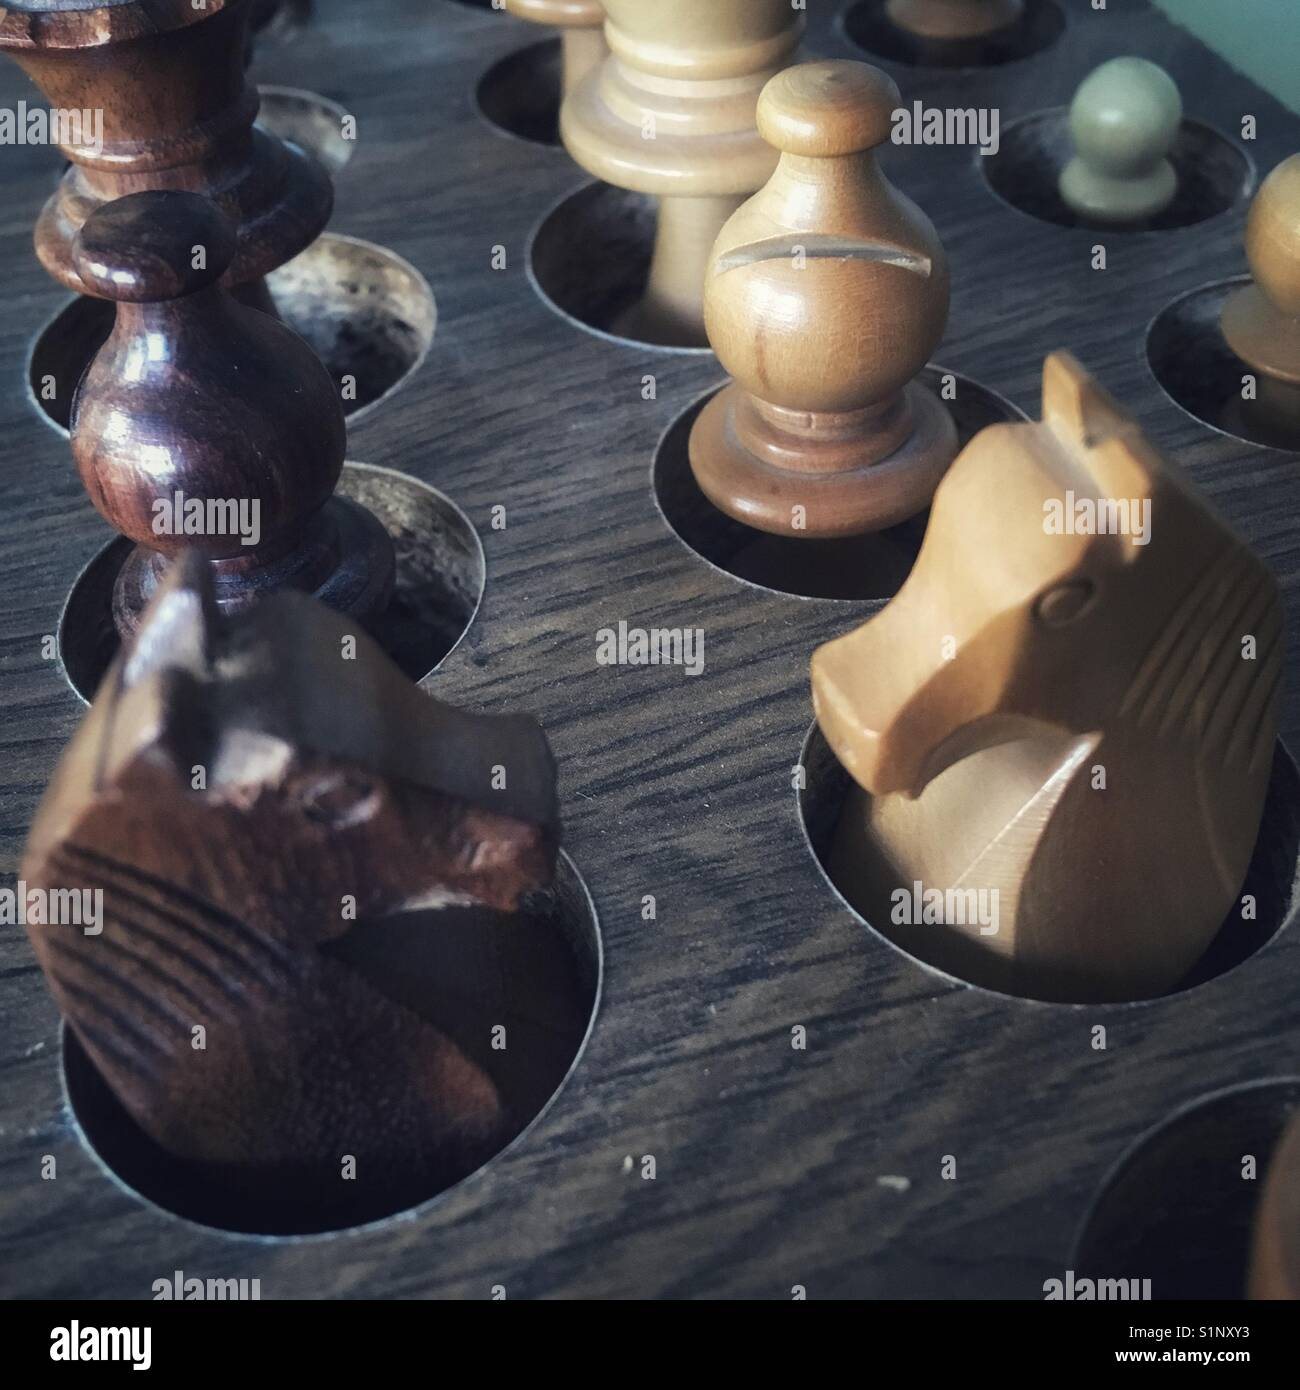 Inactive chess pieces - Stock Image